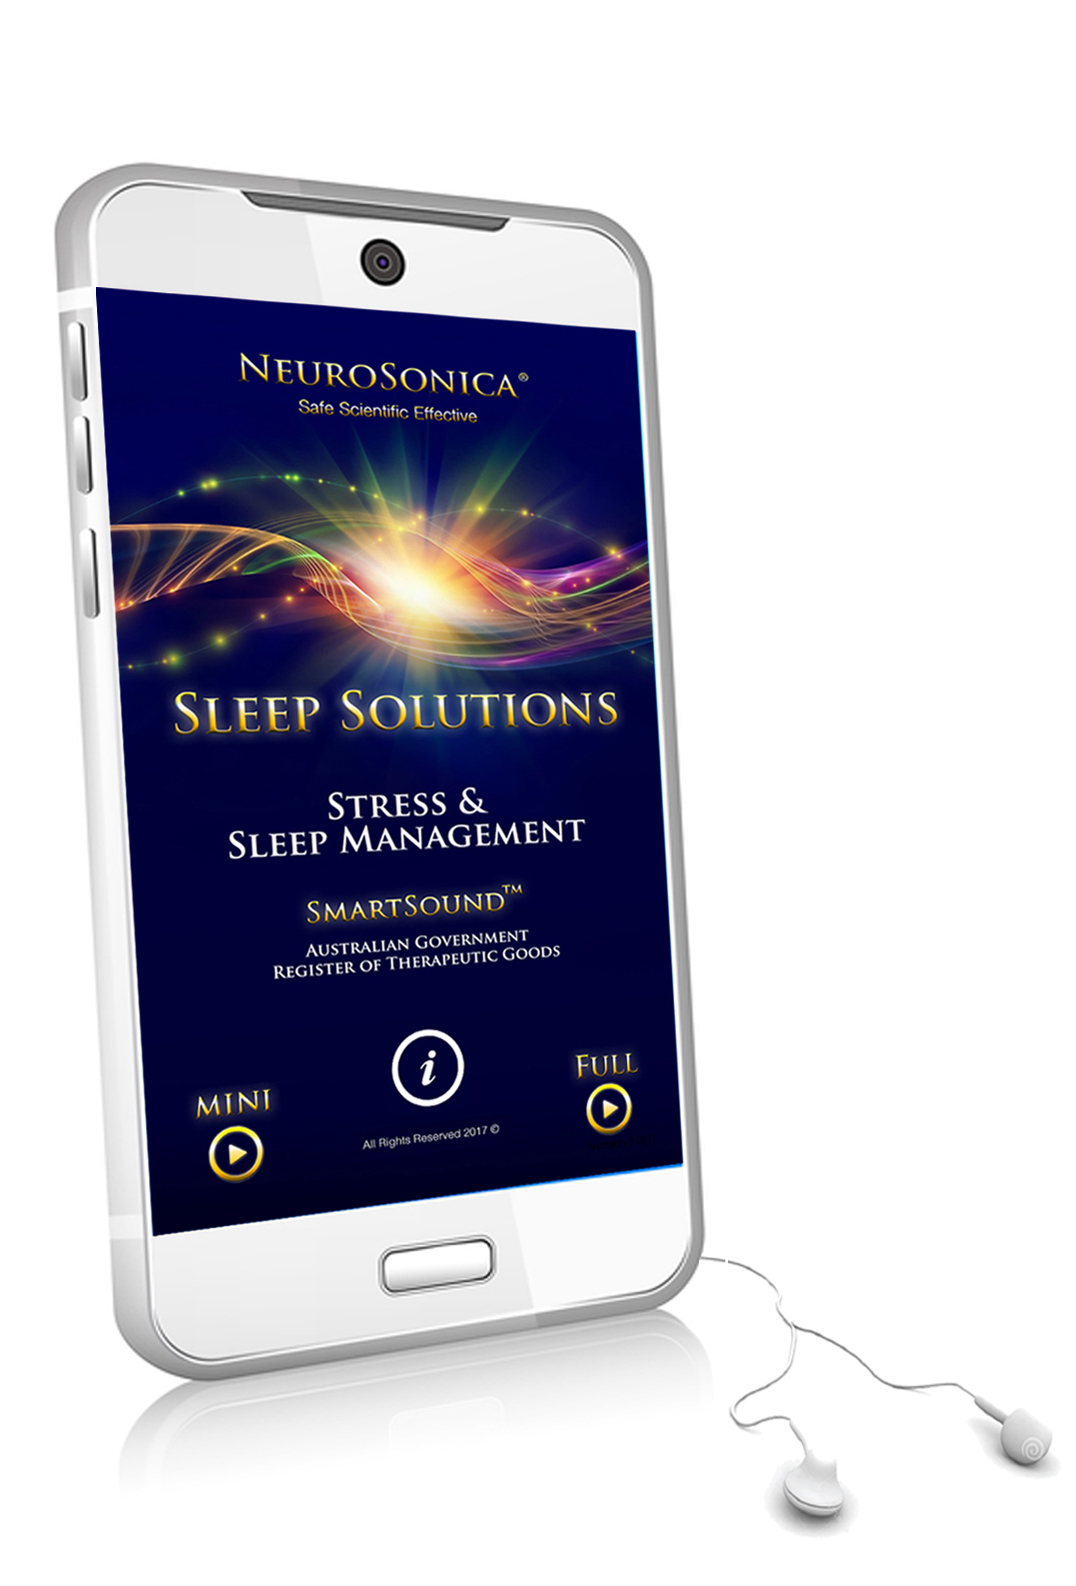 Sleep_Solutions_52cffe8e56d66.jpg